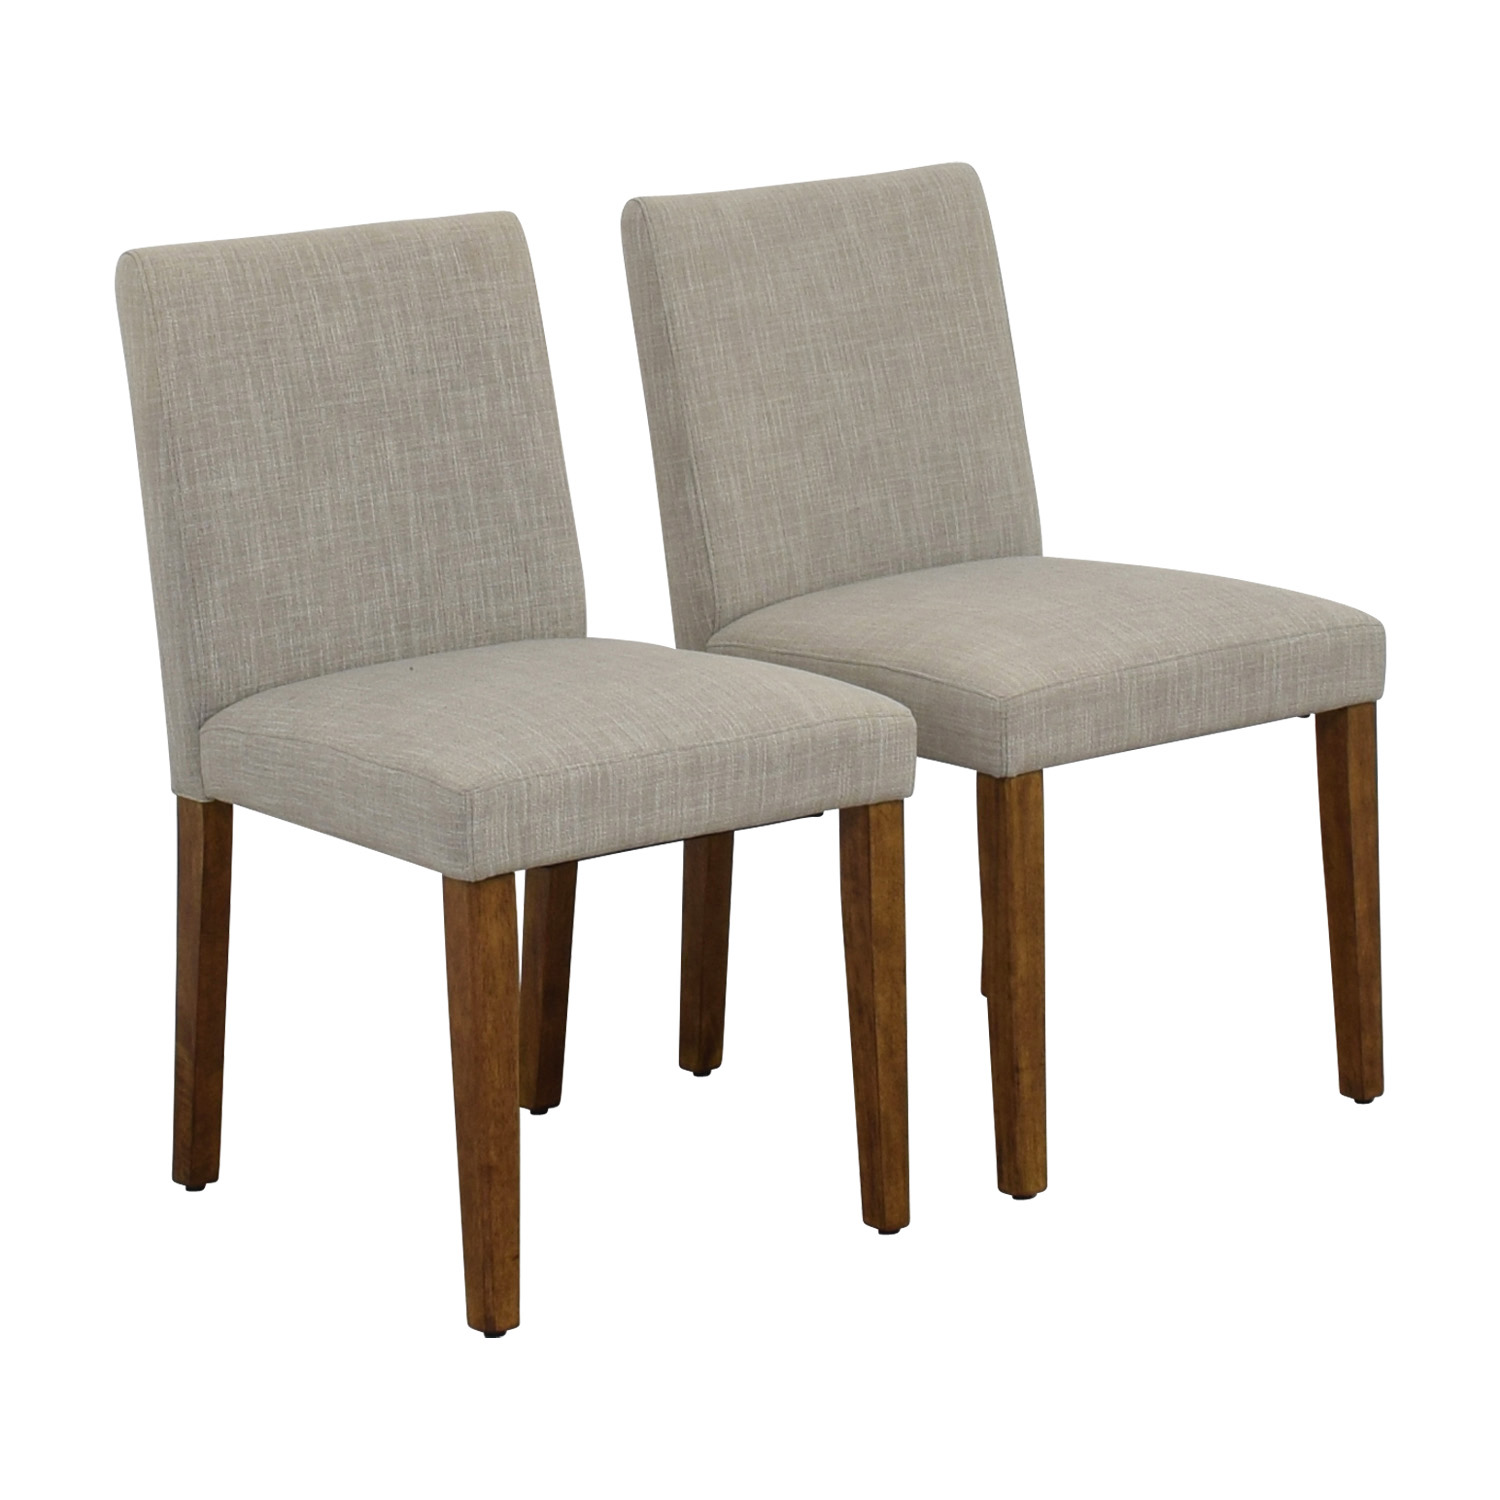 used west elm furniture. Shop West Elm Being Upholstered Dining Chairs Used Furniture